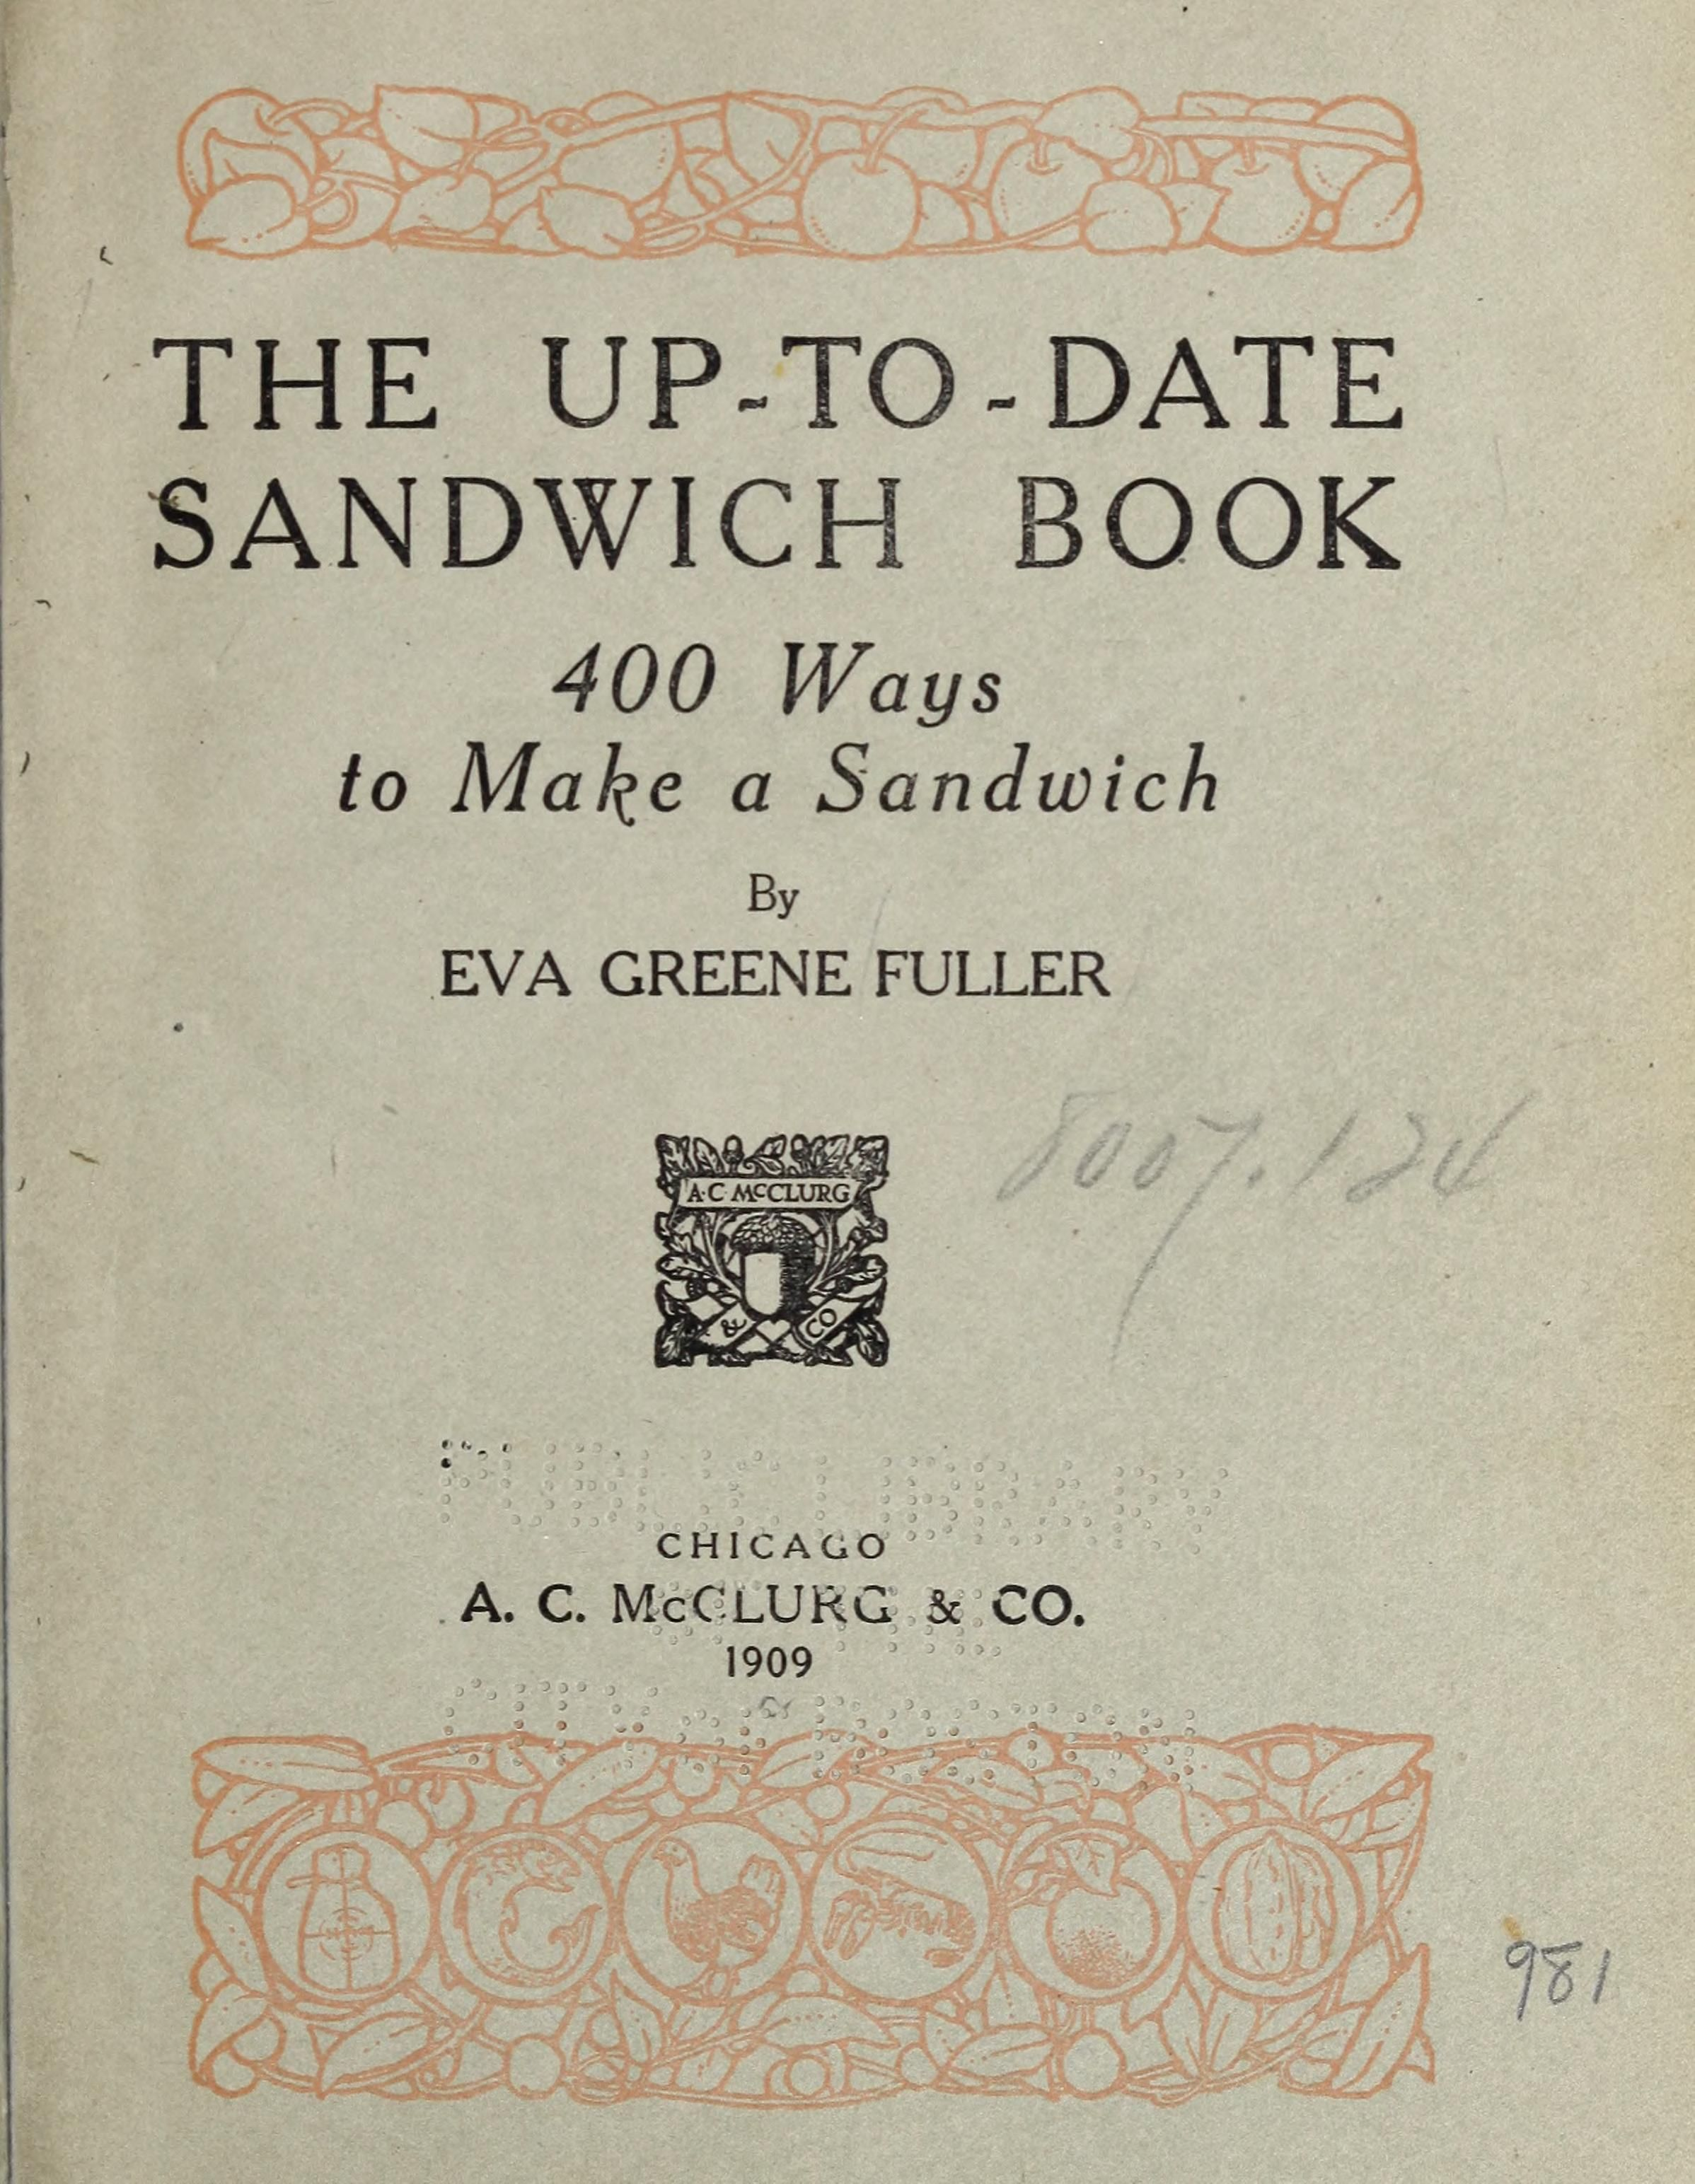 the up to date sandwich book 400 ways to make a sandwich by eva